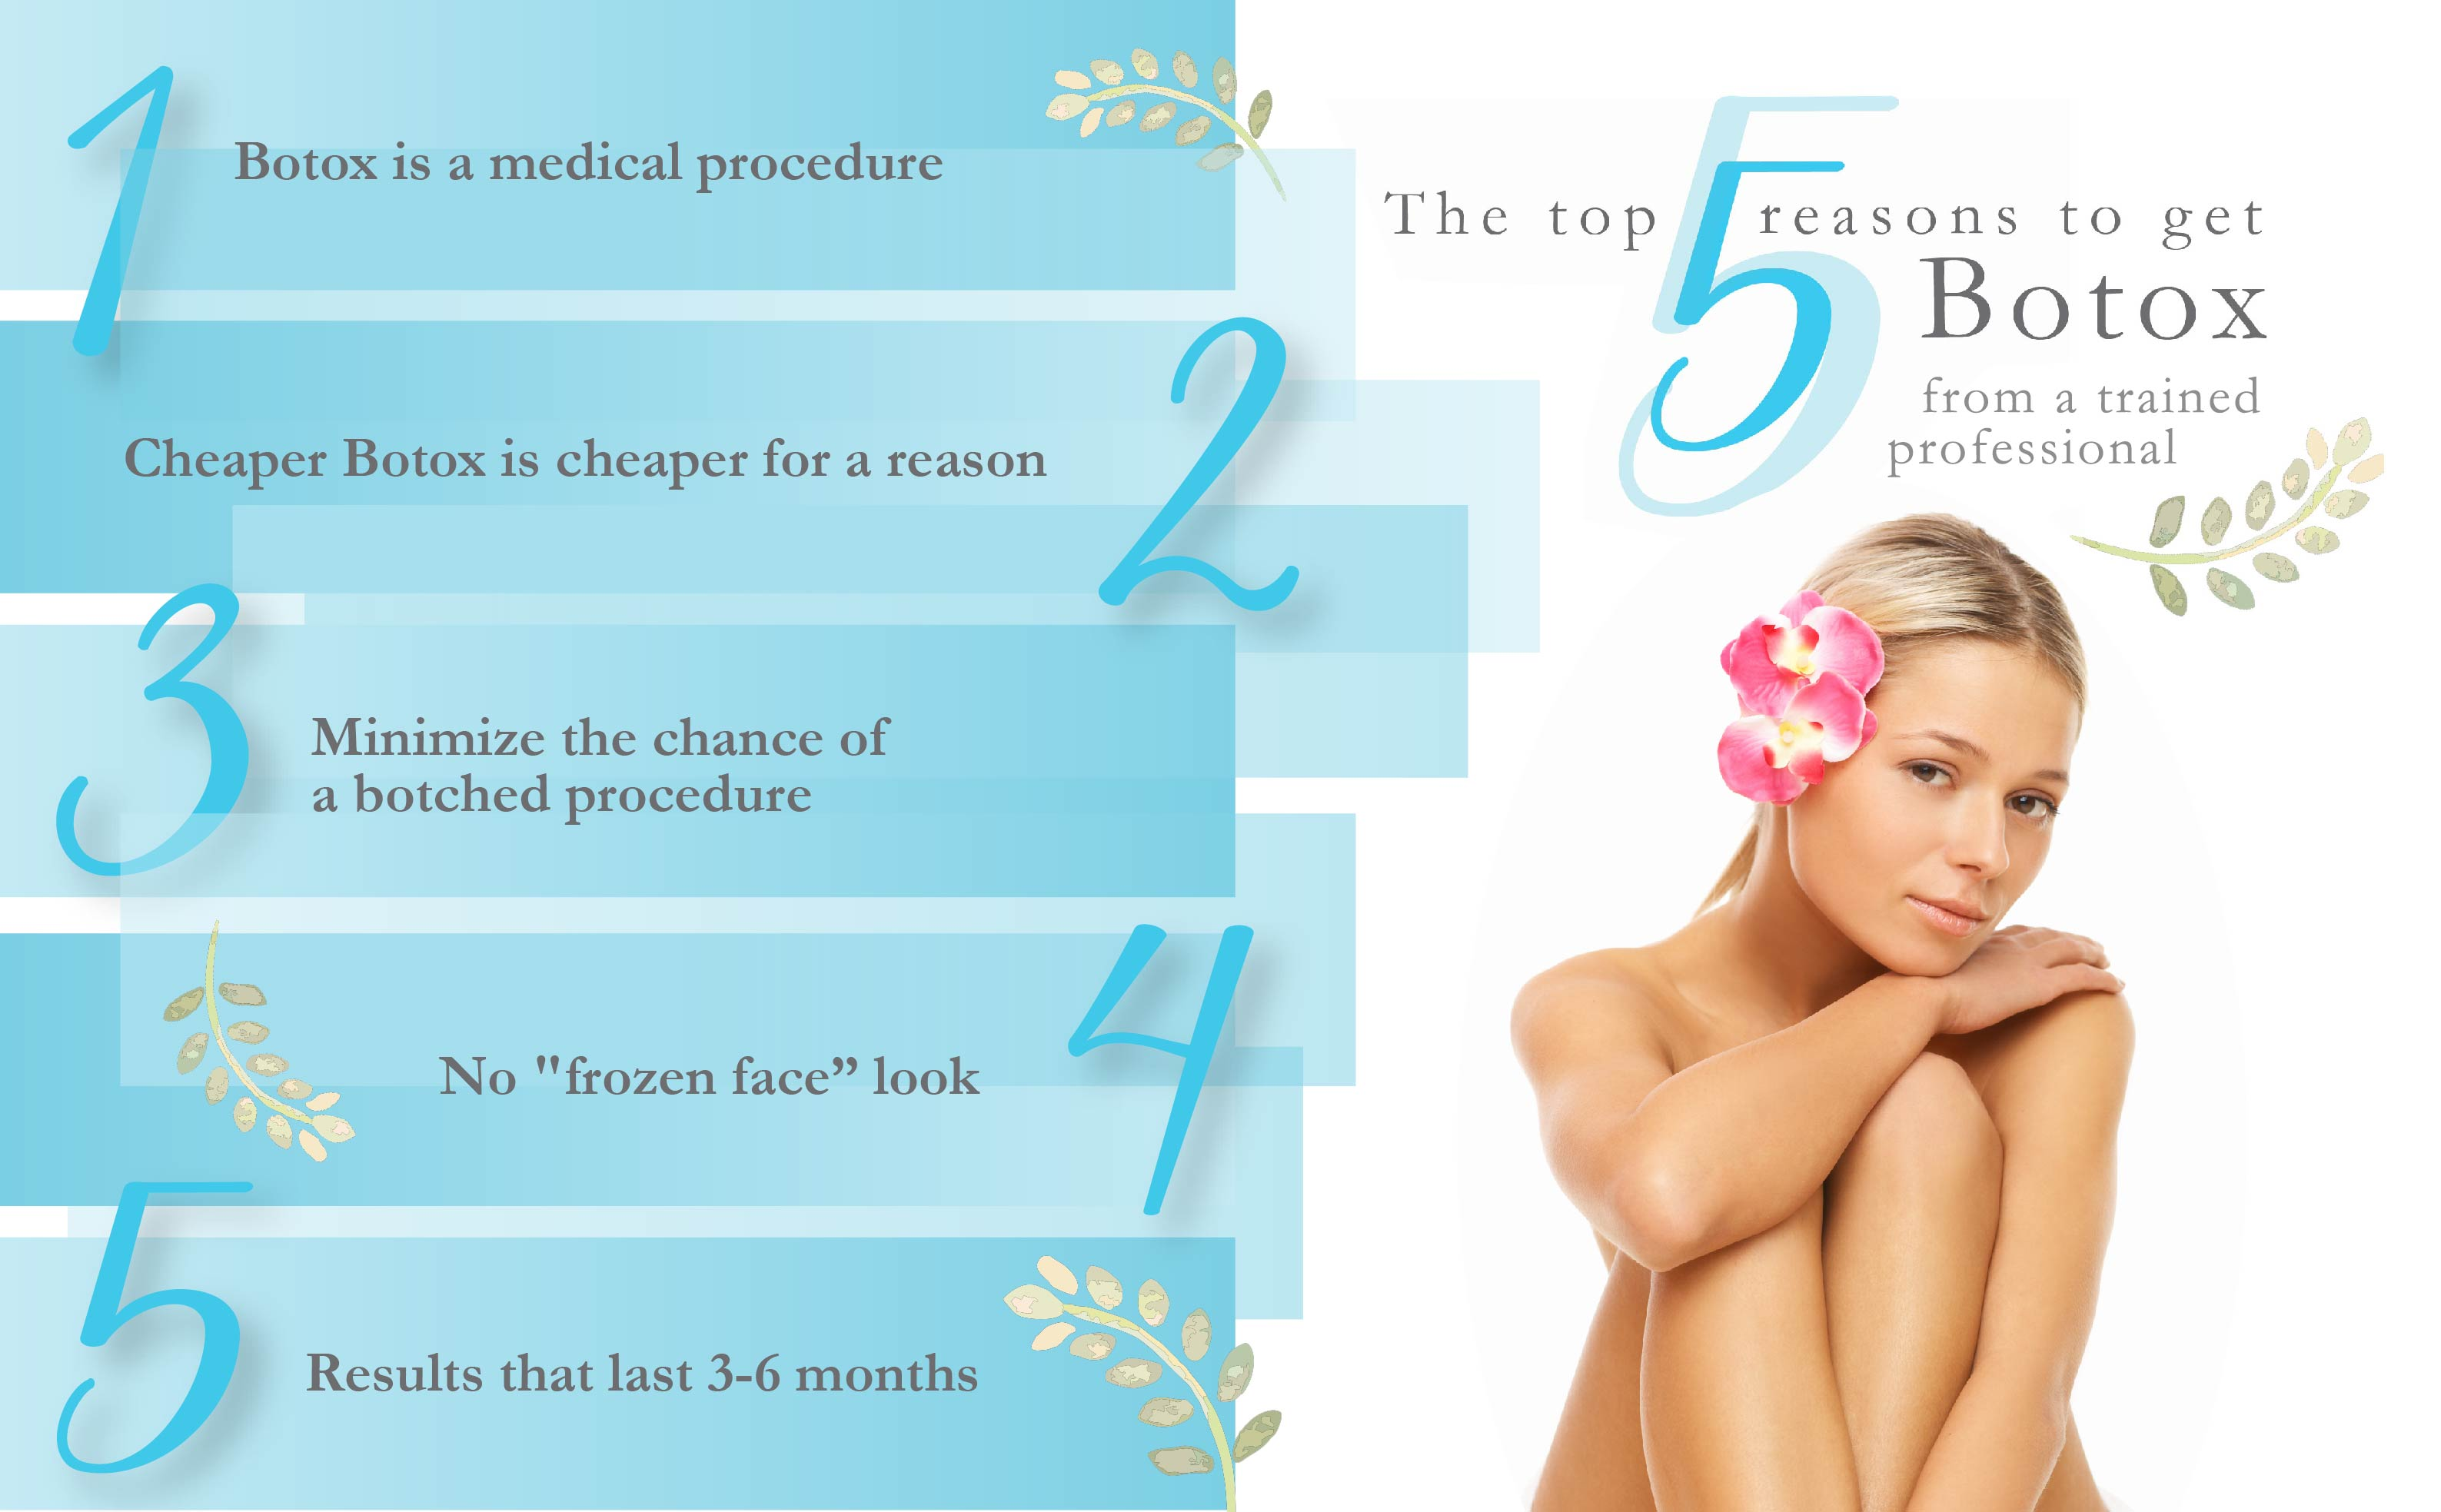 Five Reasons to Get Botox From a Medical Professional